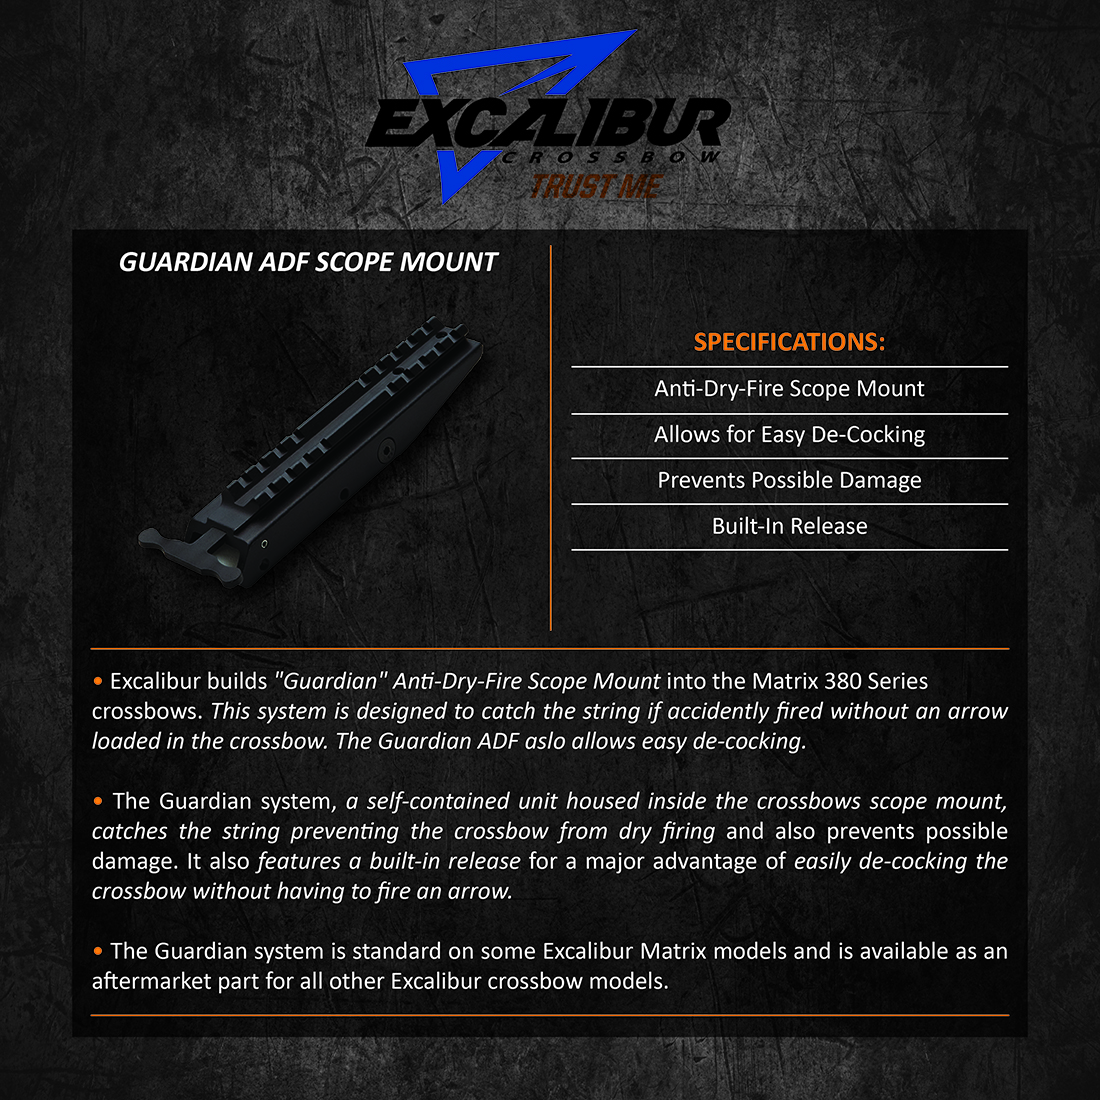 Excalibur_Gaurdian_ADF_Scope_Mount_Product_Description